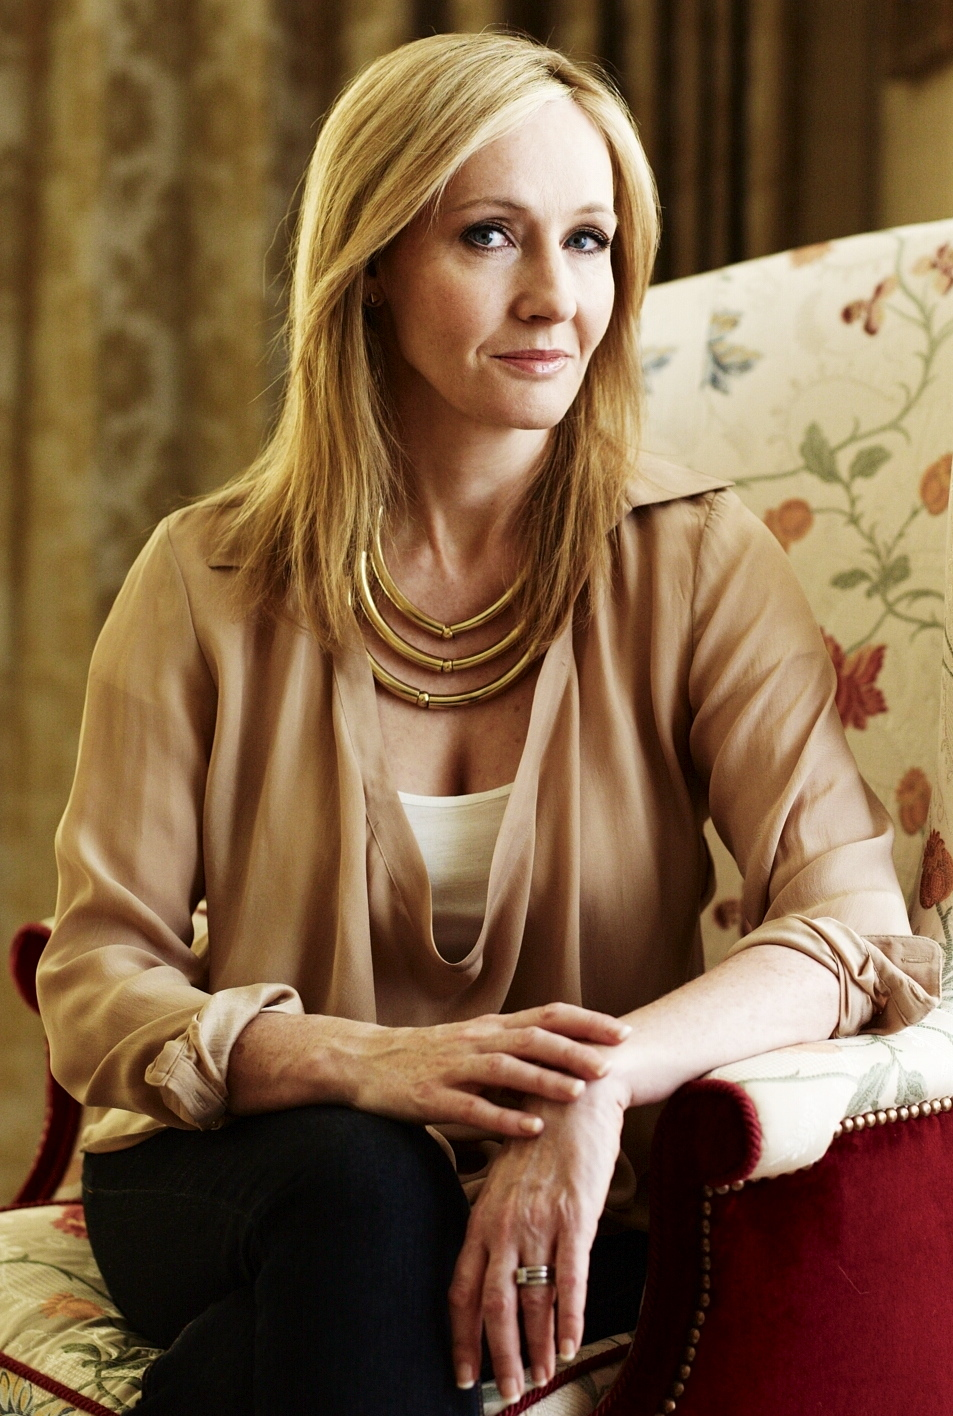 http://larryfire.files.wordpress.com/2012/04/jk-rowling-official-portrait.jpg